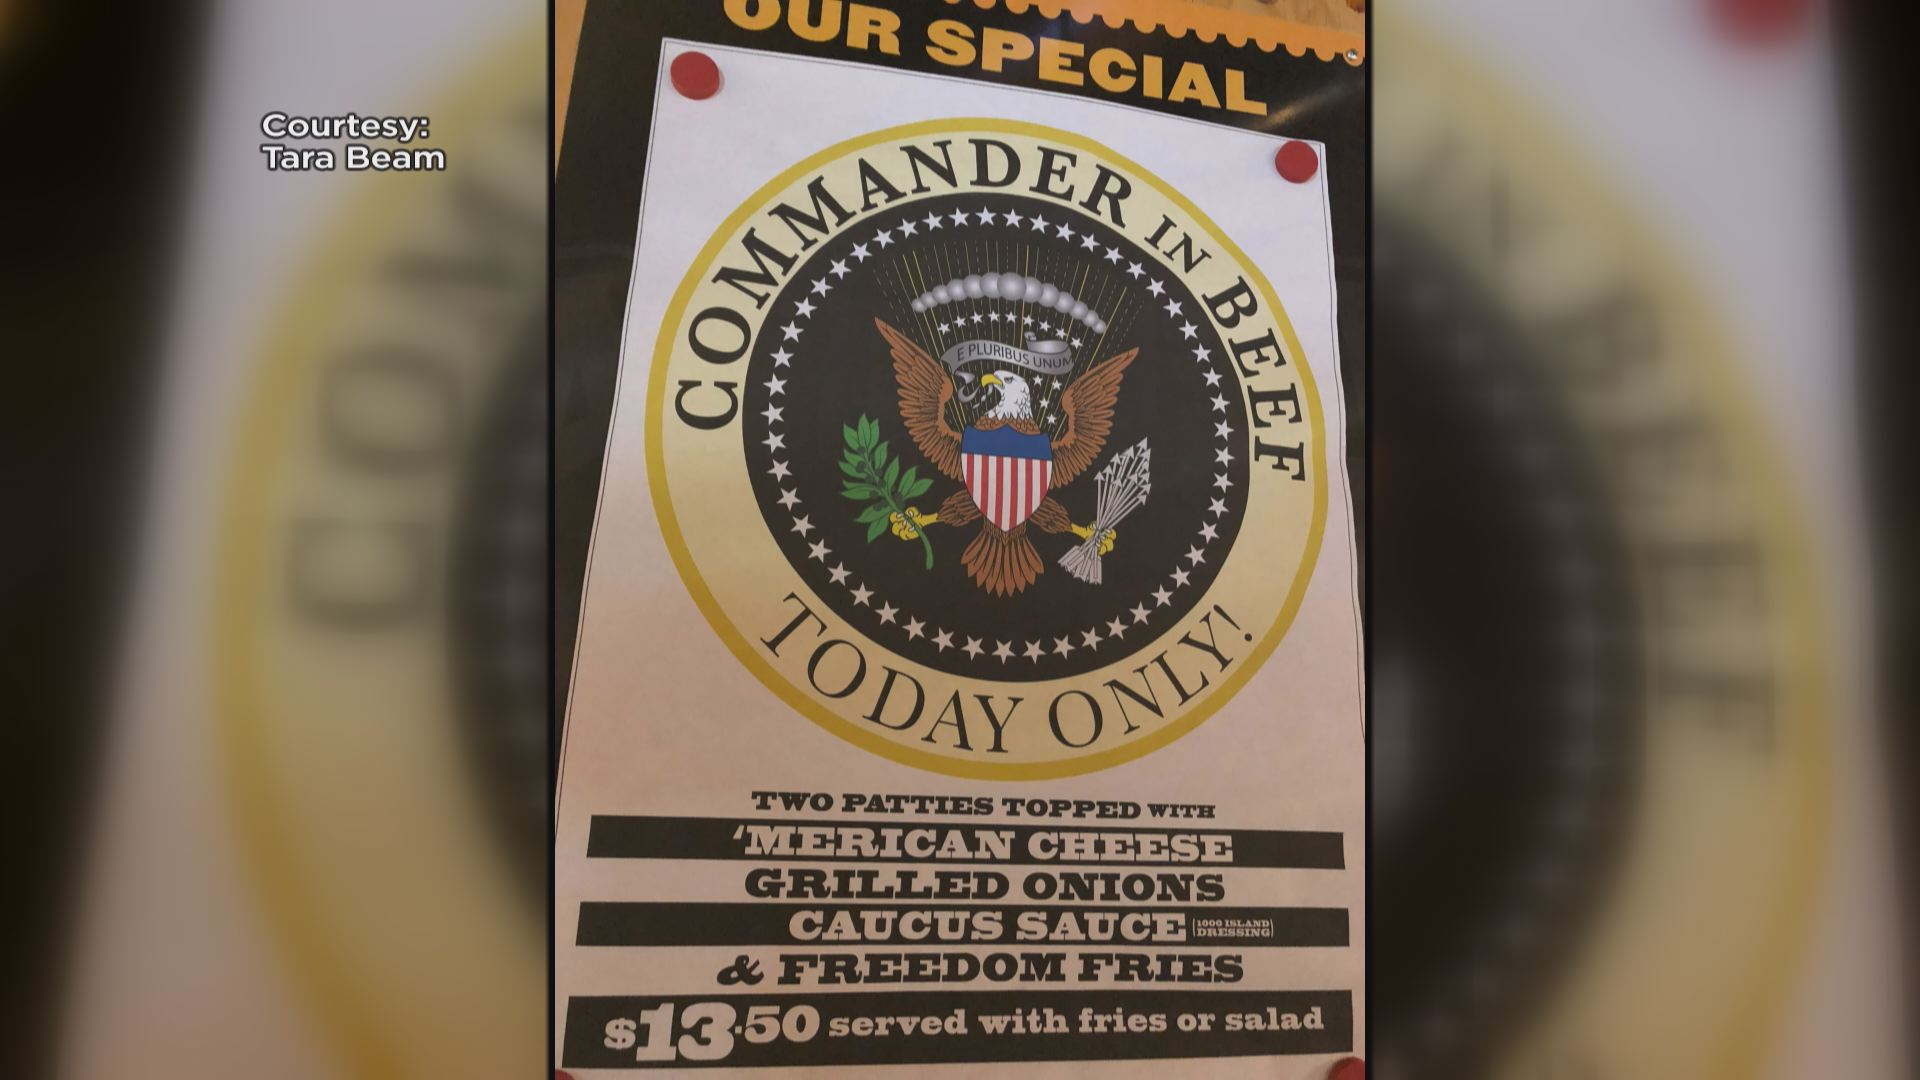 The Commander in Beef Burger for one day only, when the POTUS visits Montana.